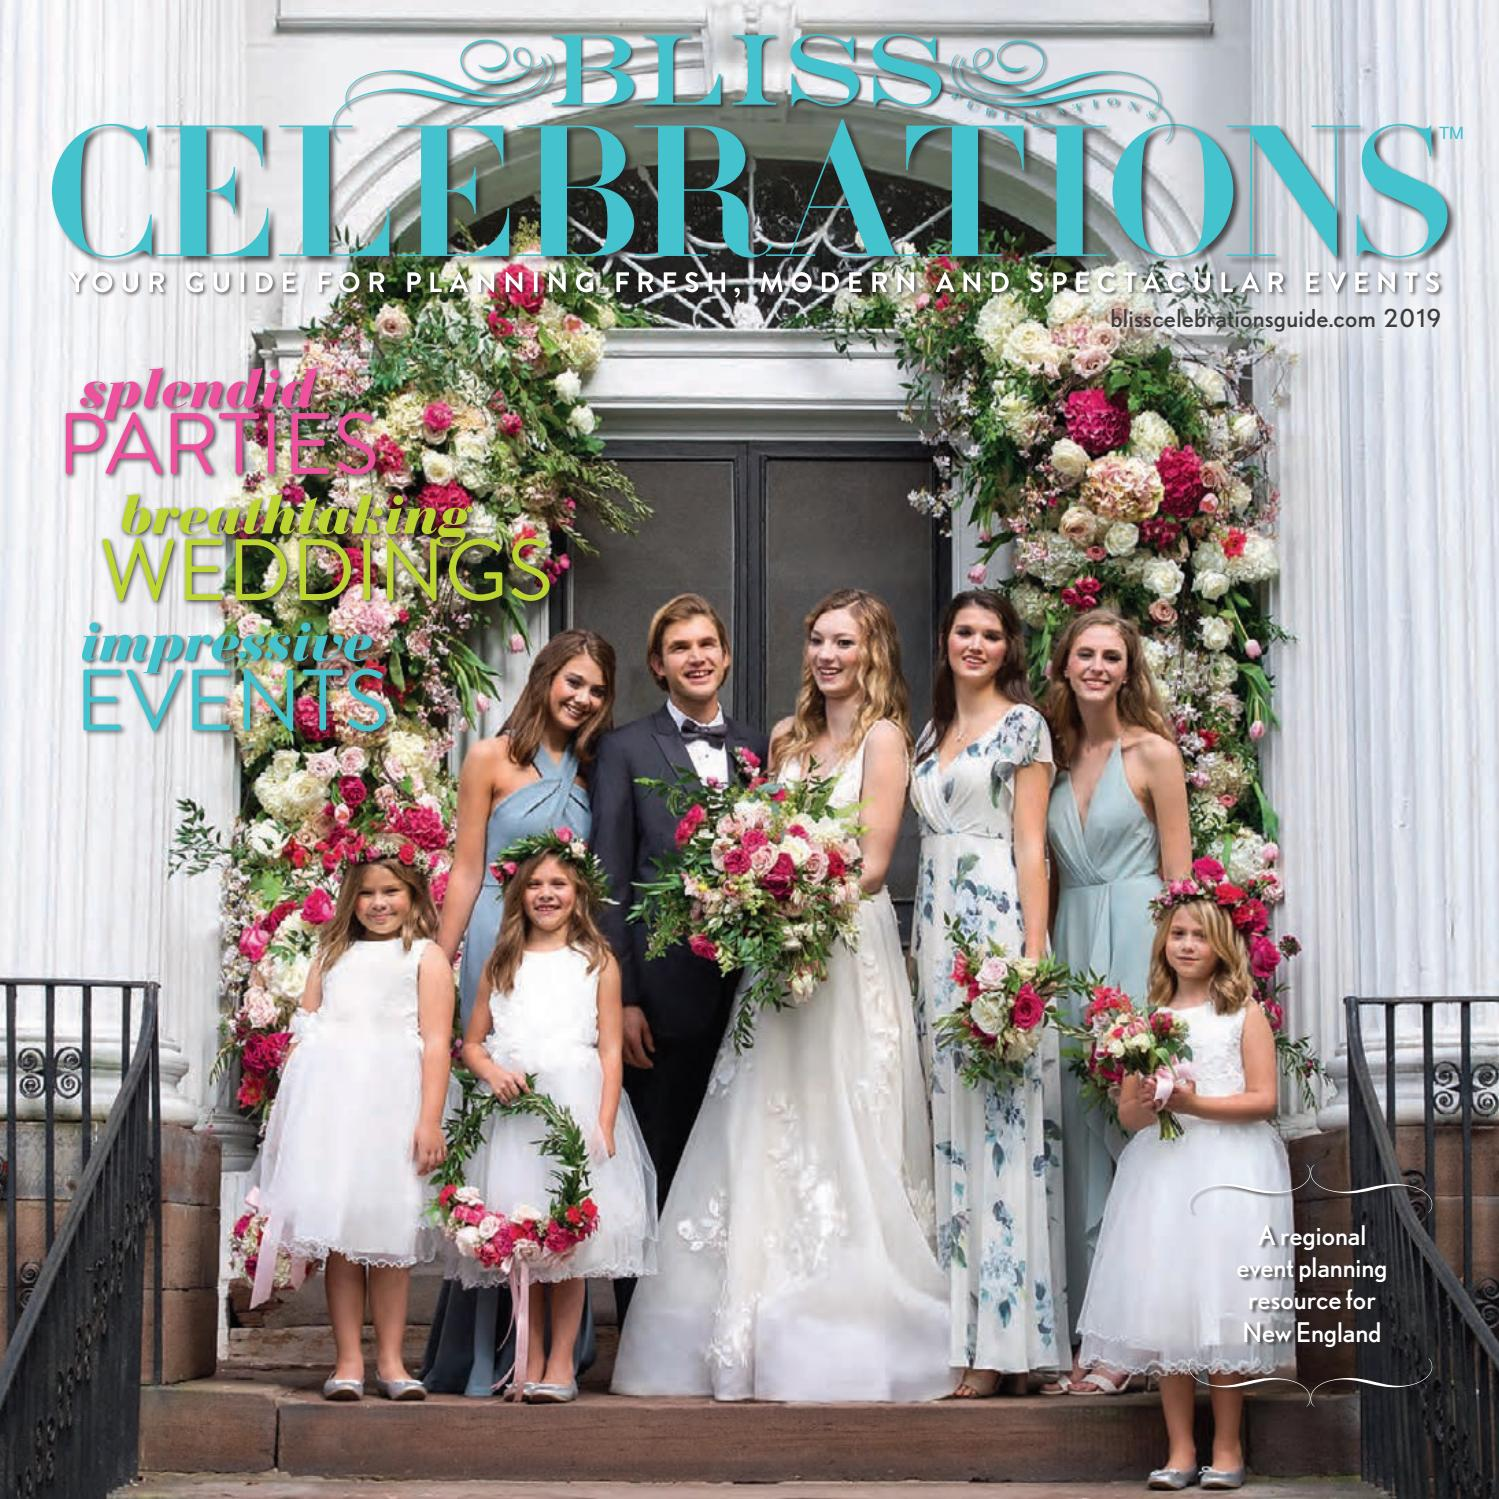 c2533f5f09 2019 BLISS CELEBRATIONS GUIDE by Bliss Publications - issuu